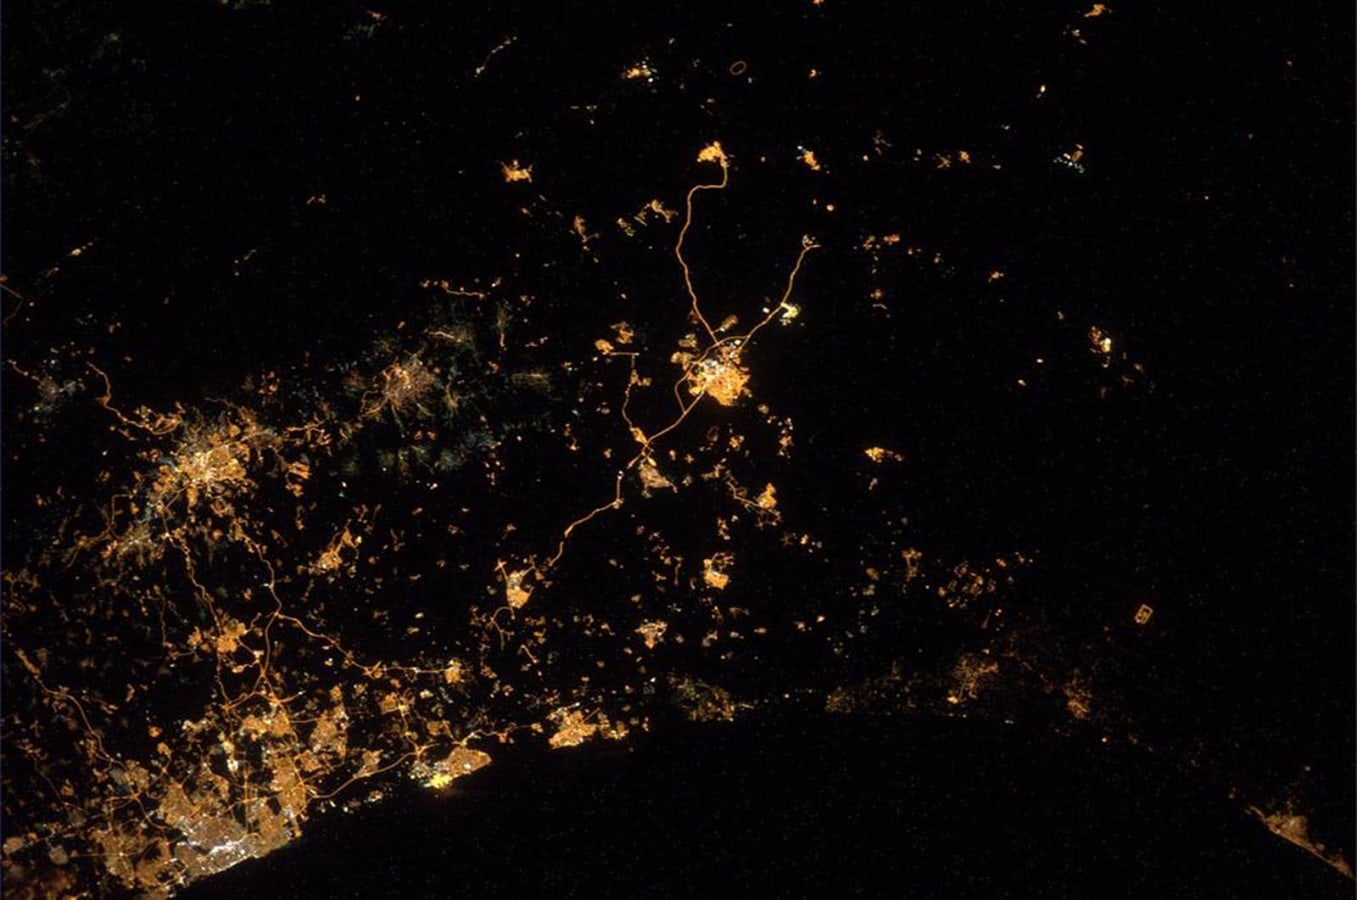 German astronaut Alexander Gerst posted this image Wednesday of Gaza and Israel as seen from the International Space Station on Twitter.